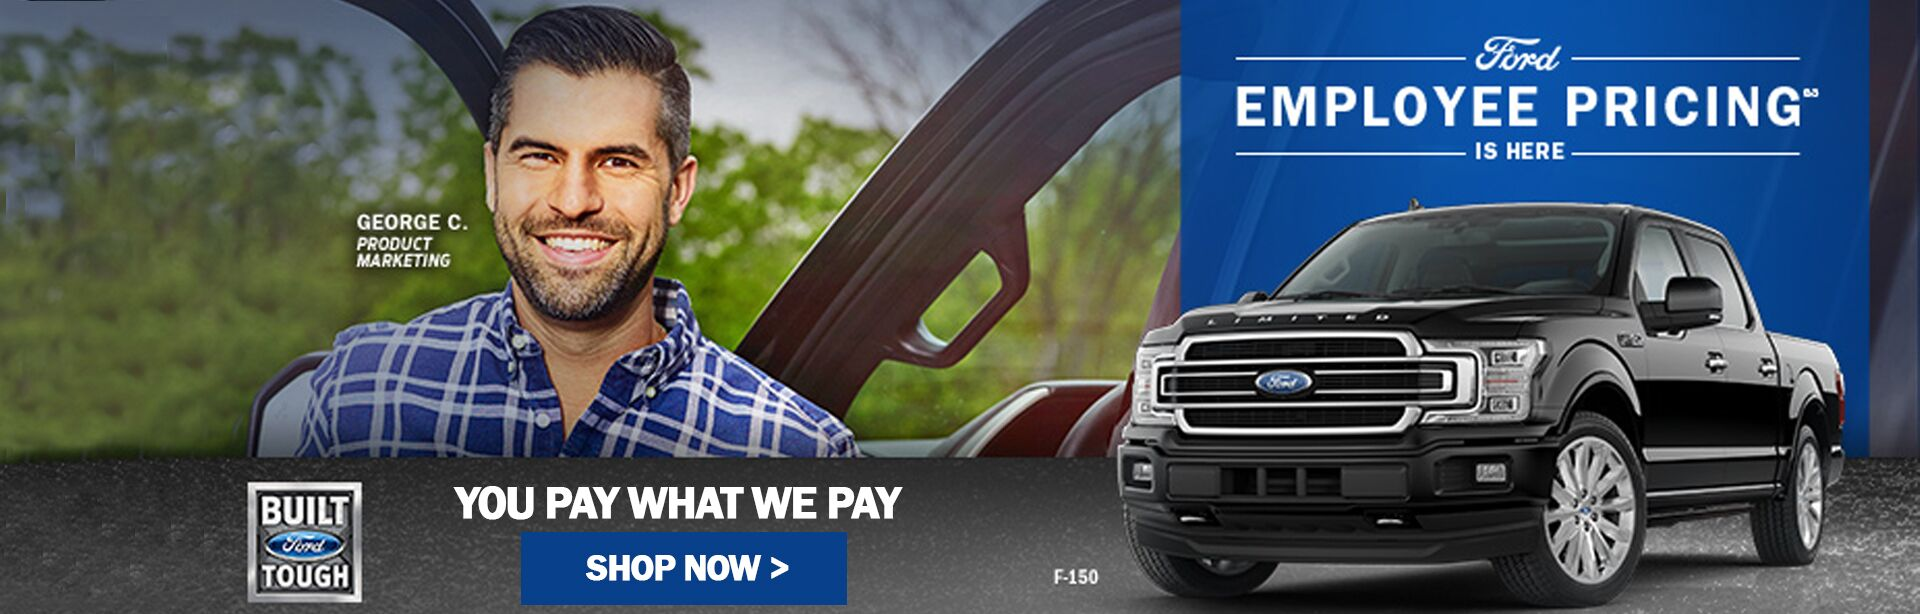 Employee Pricing at Marlborough Ford